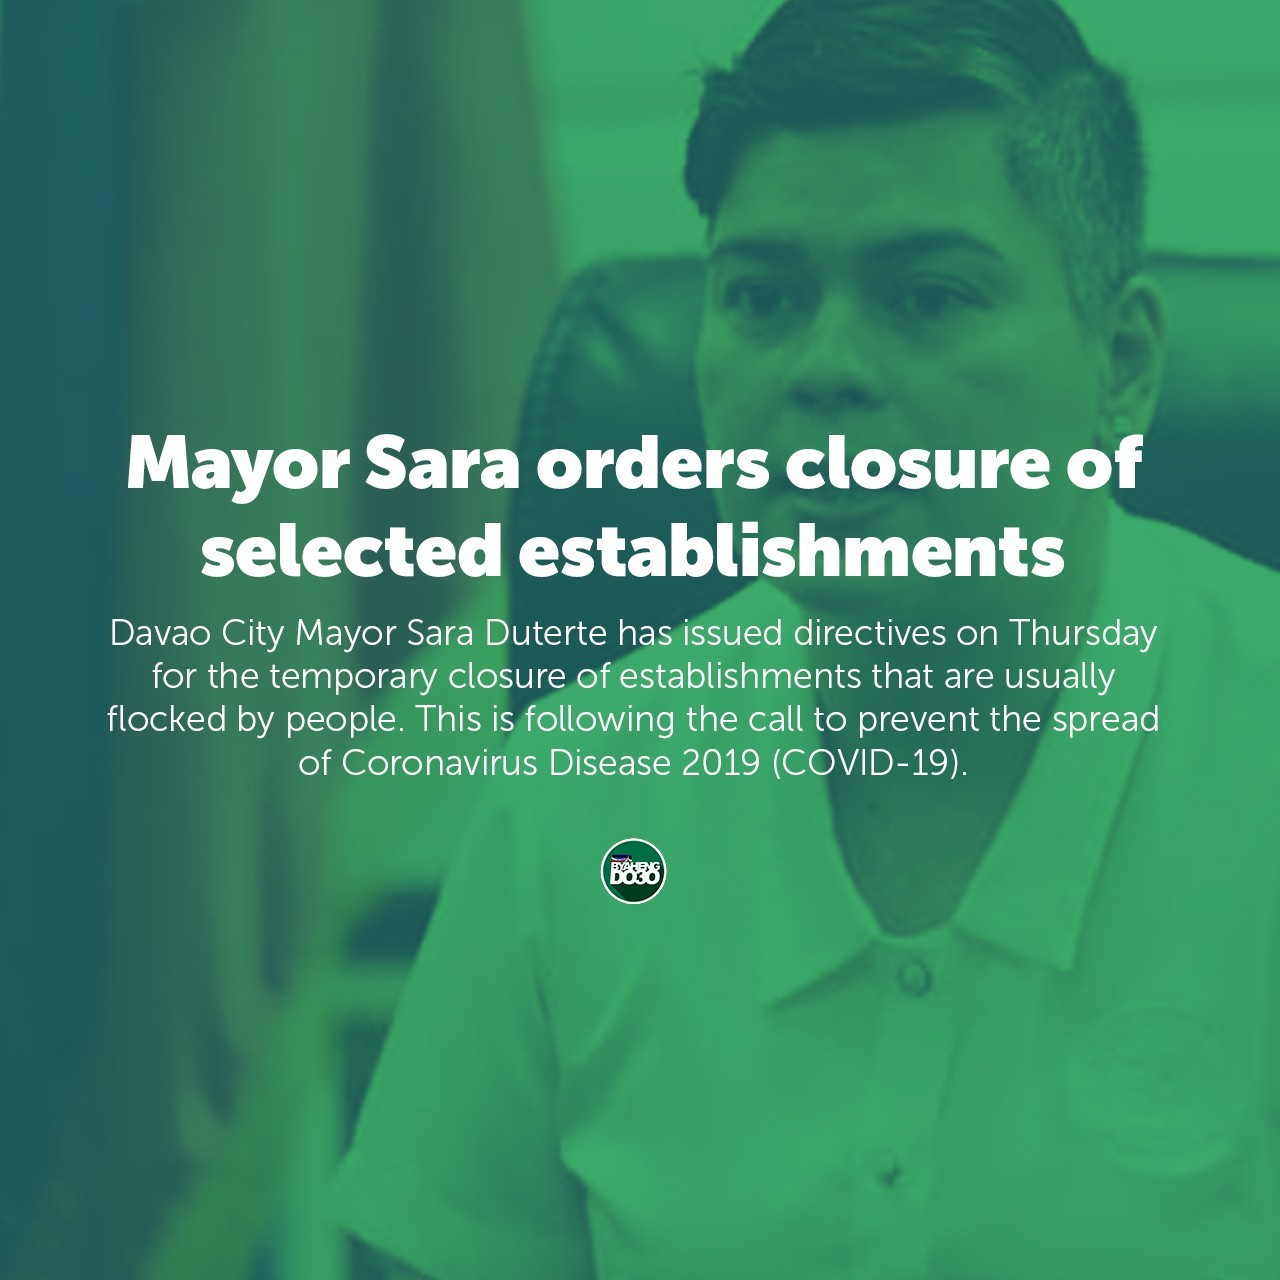 Mayor Sara Orders Closure of Selected Establishments